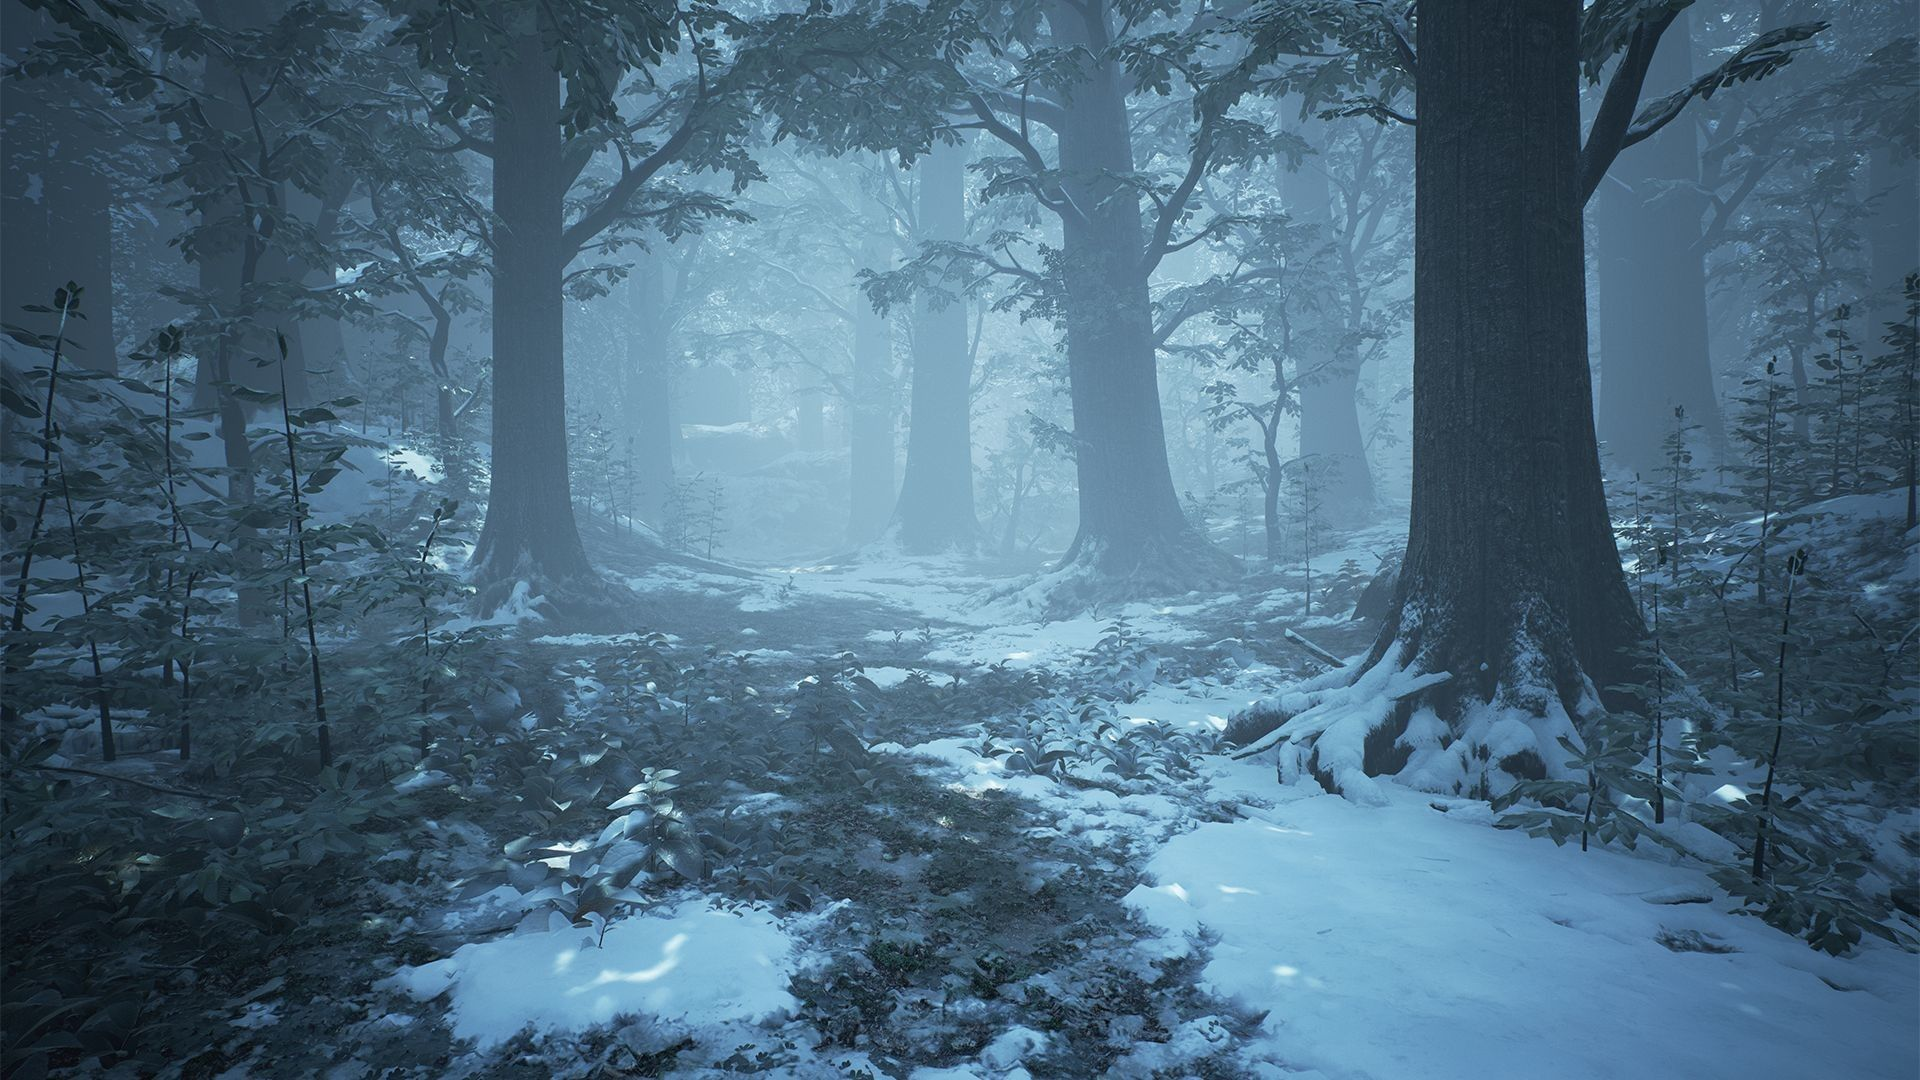 Lonely Girl Hd Wallpapers 1080p Artstation Ue4 Winter Forest Willi Hammes